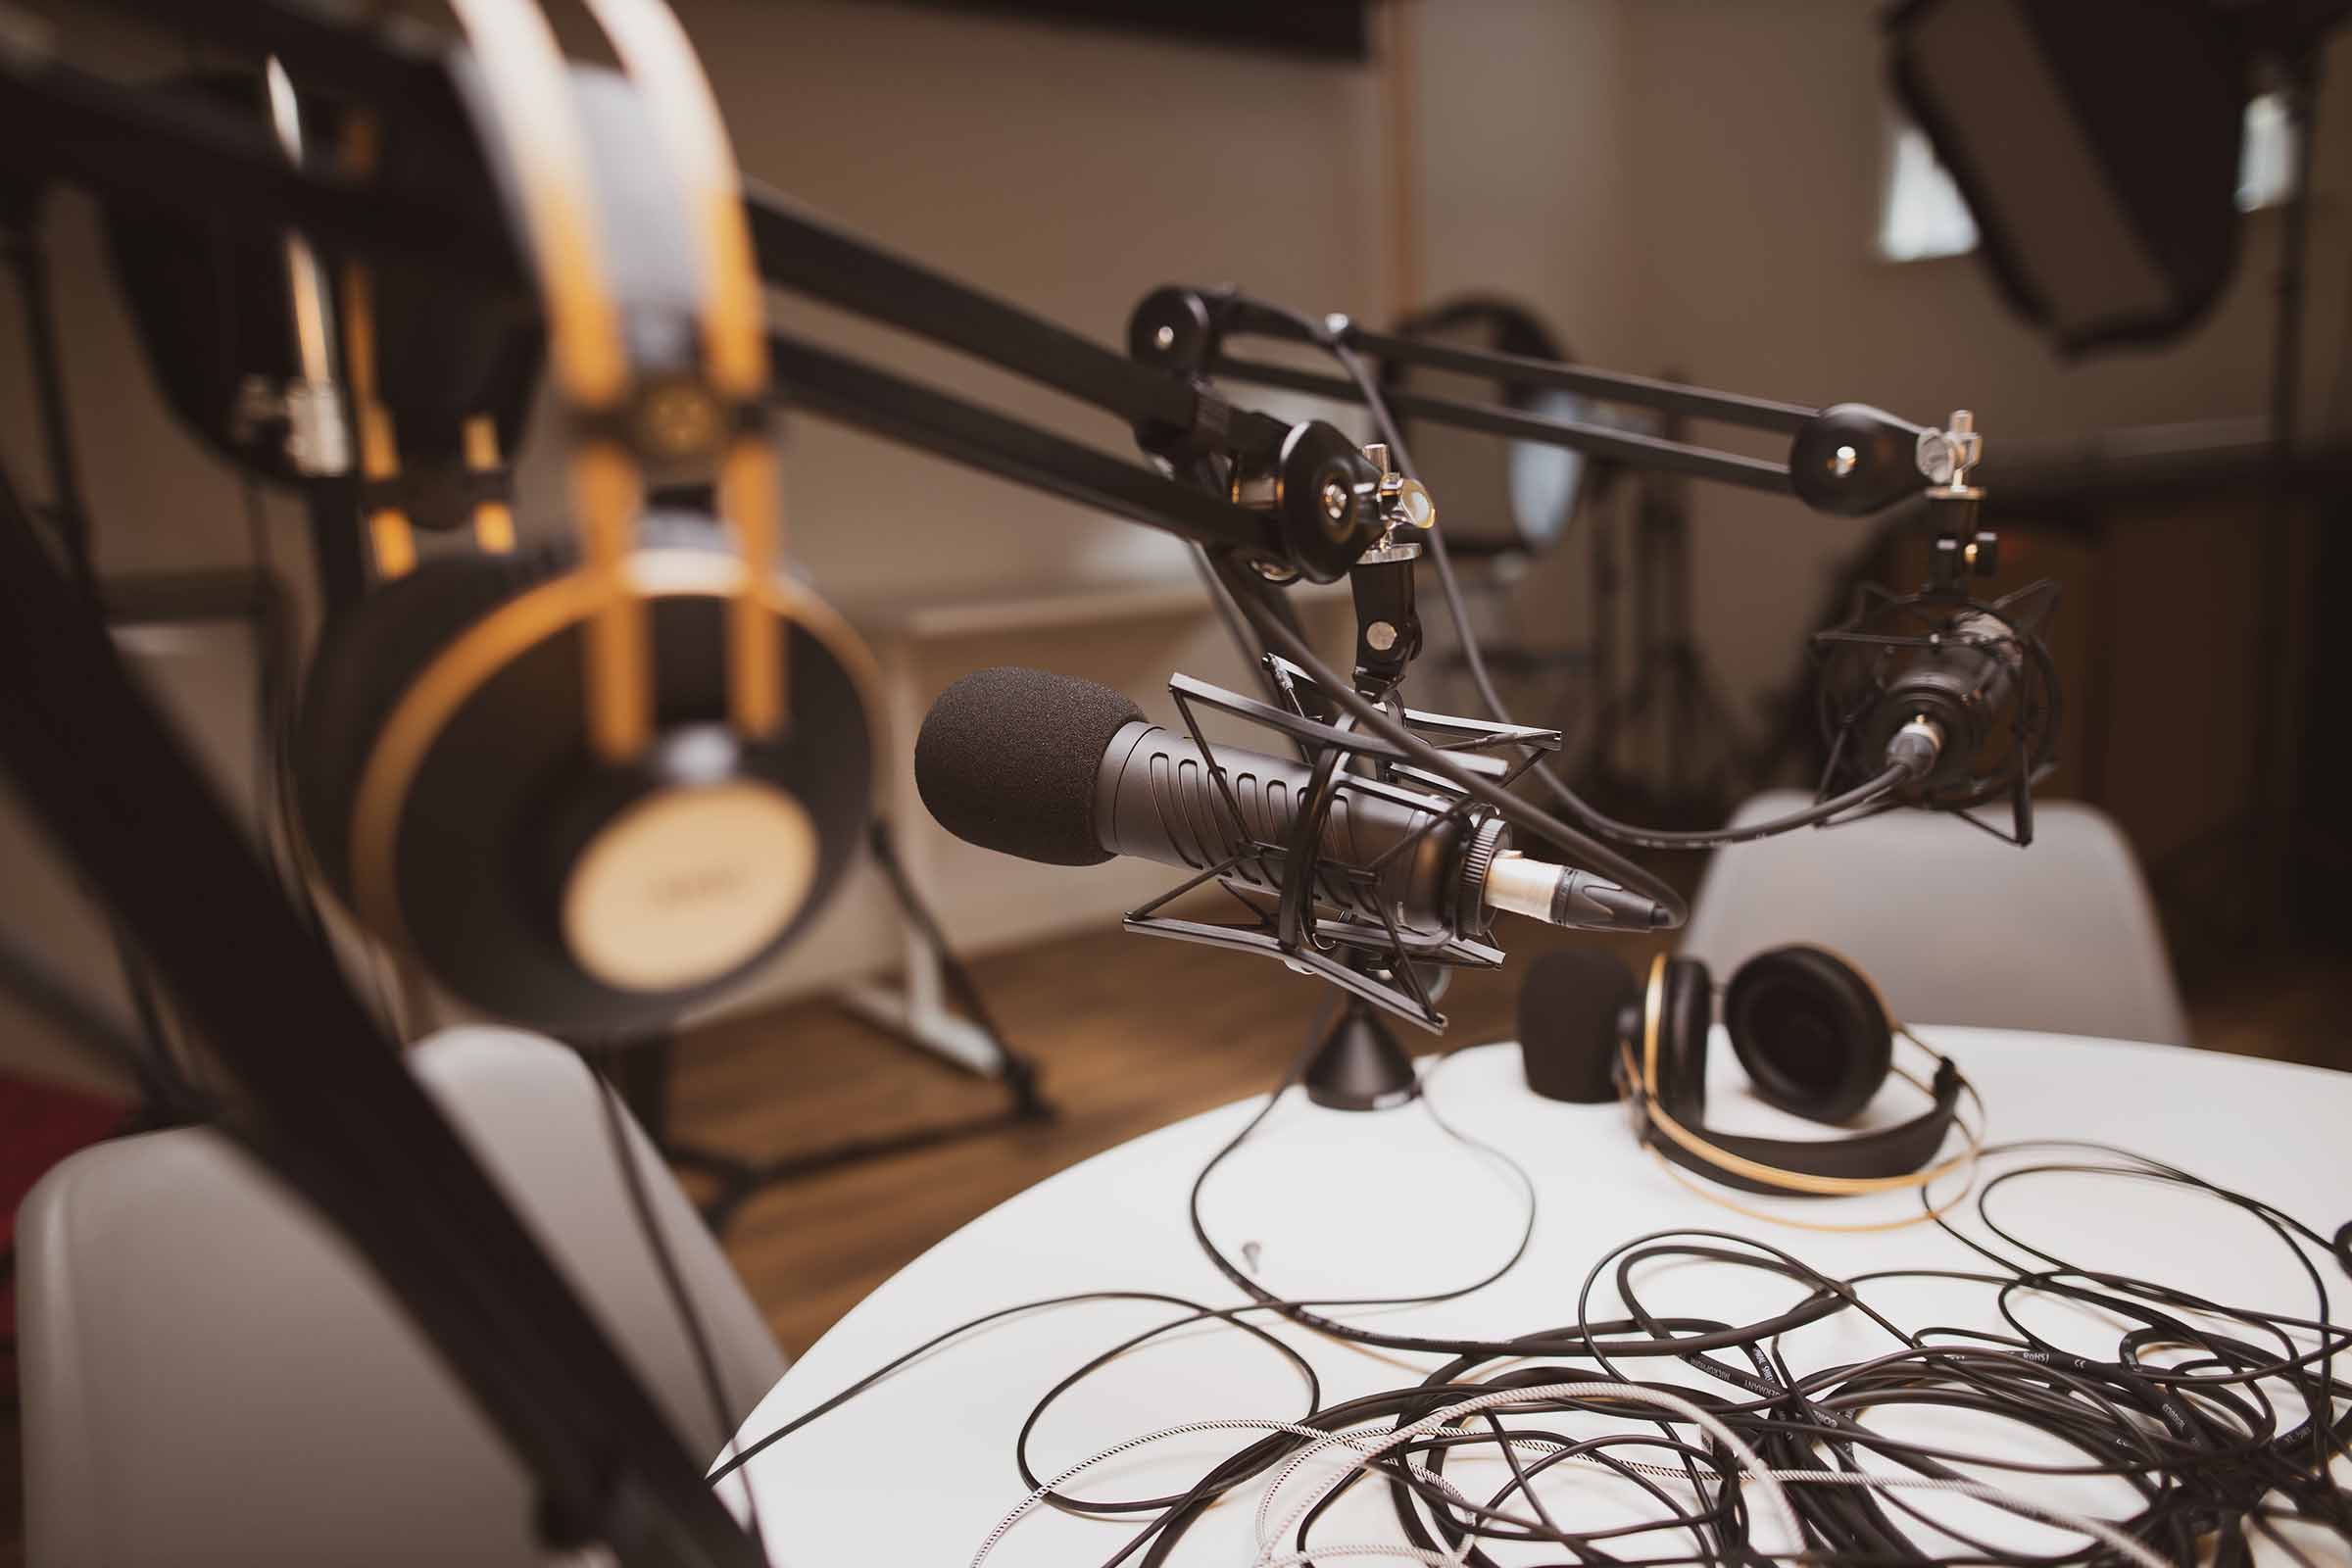 A podcast production style setup with microphone and headphones on a table